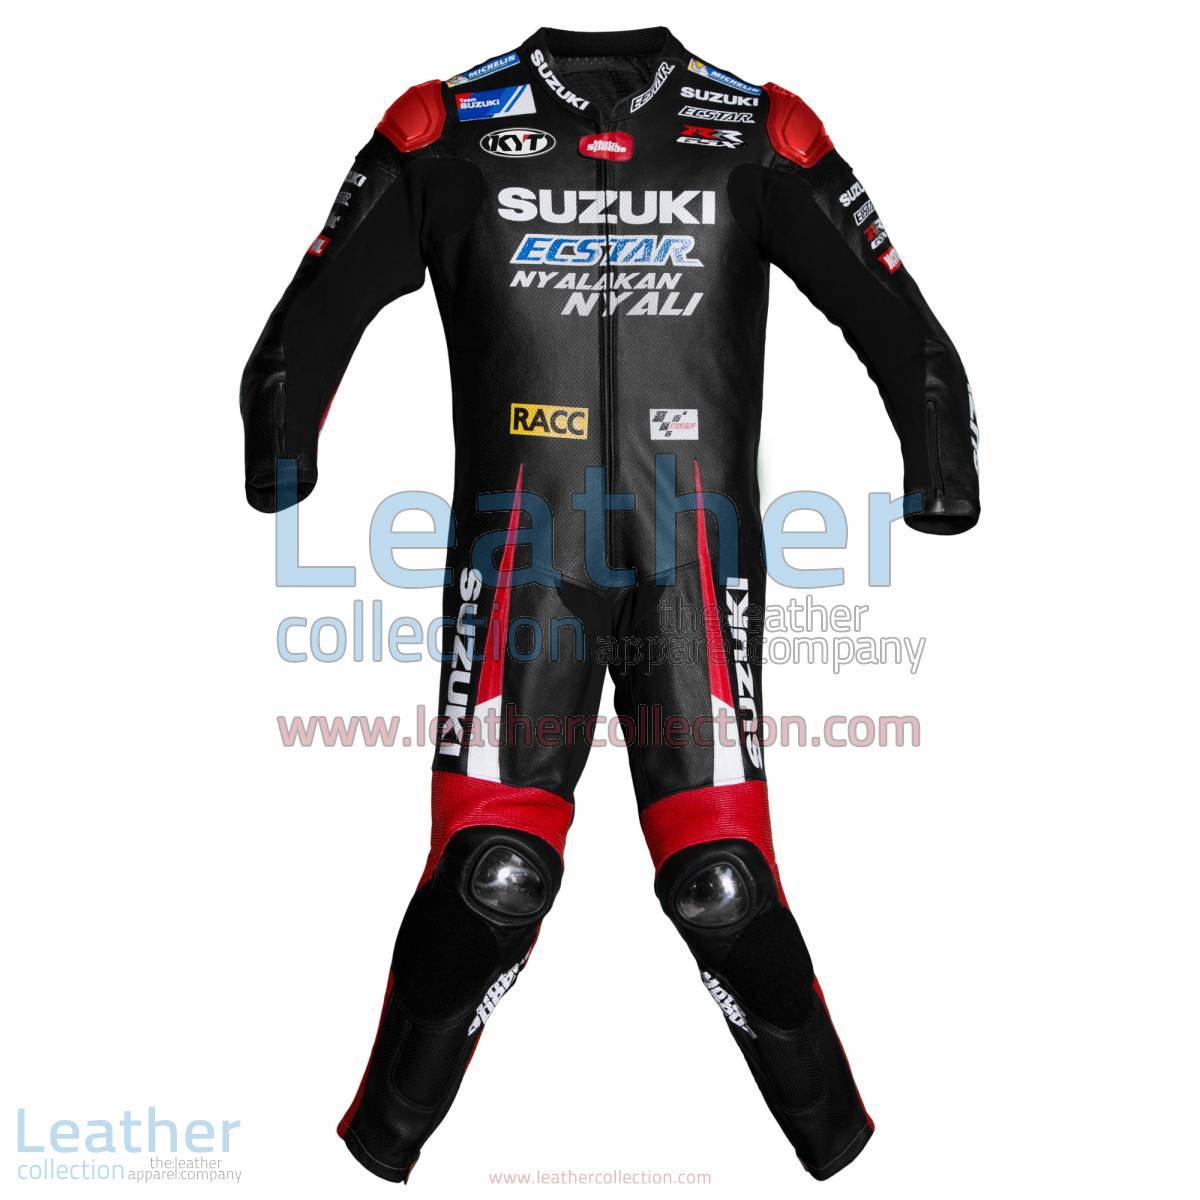 Aleix Espargaro Suzuki MotoGP 2016 Leather Suit | Aleix Espargaro Suzuki MotoGP 2016 Leather Suit